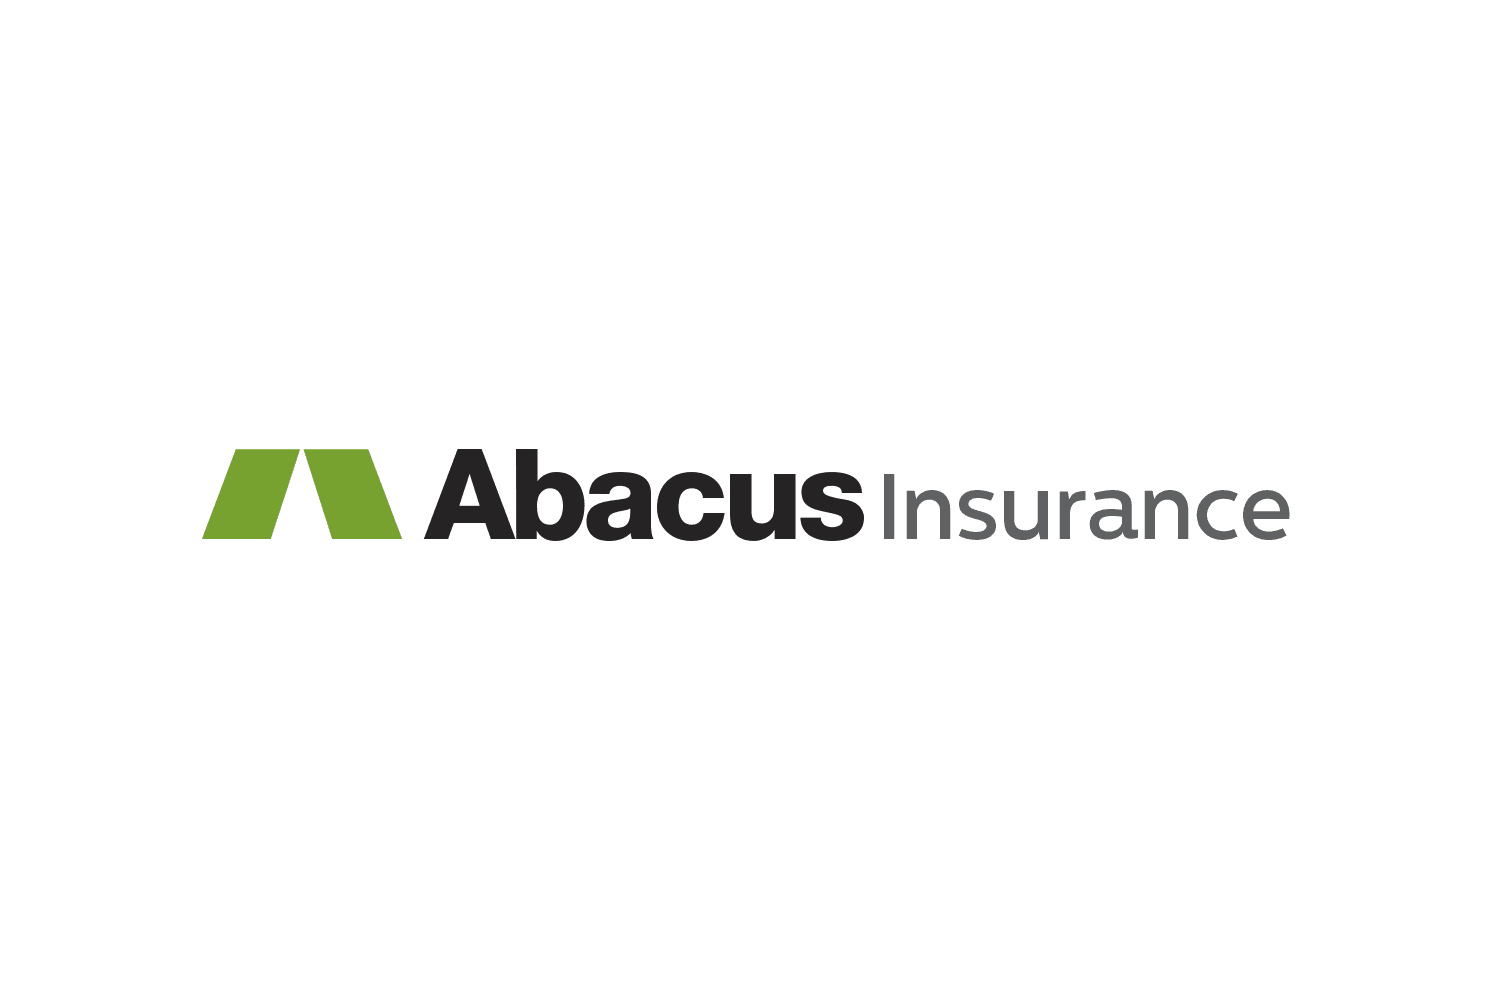 Abacus Insurance logo design by imjustcreative